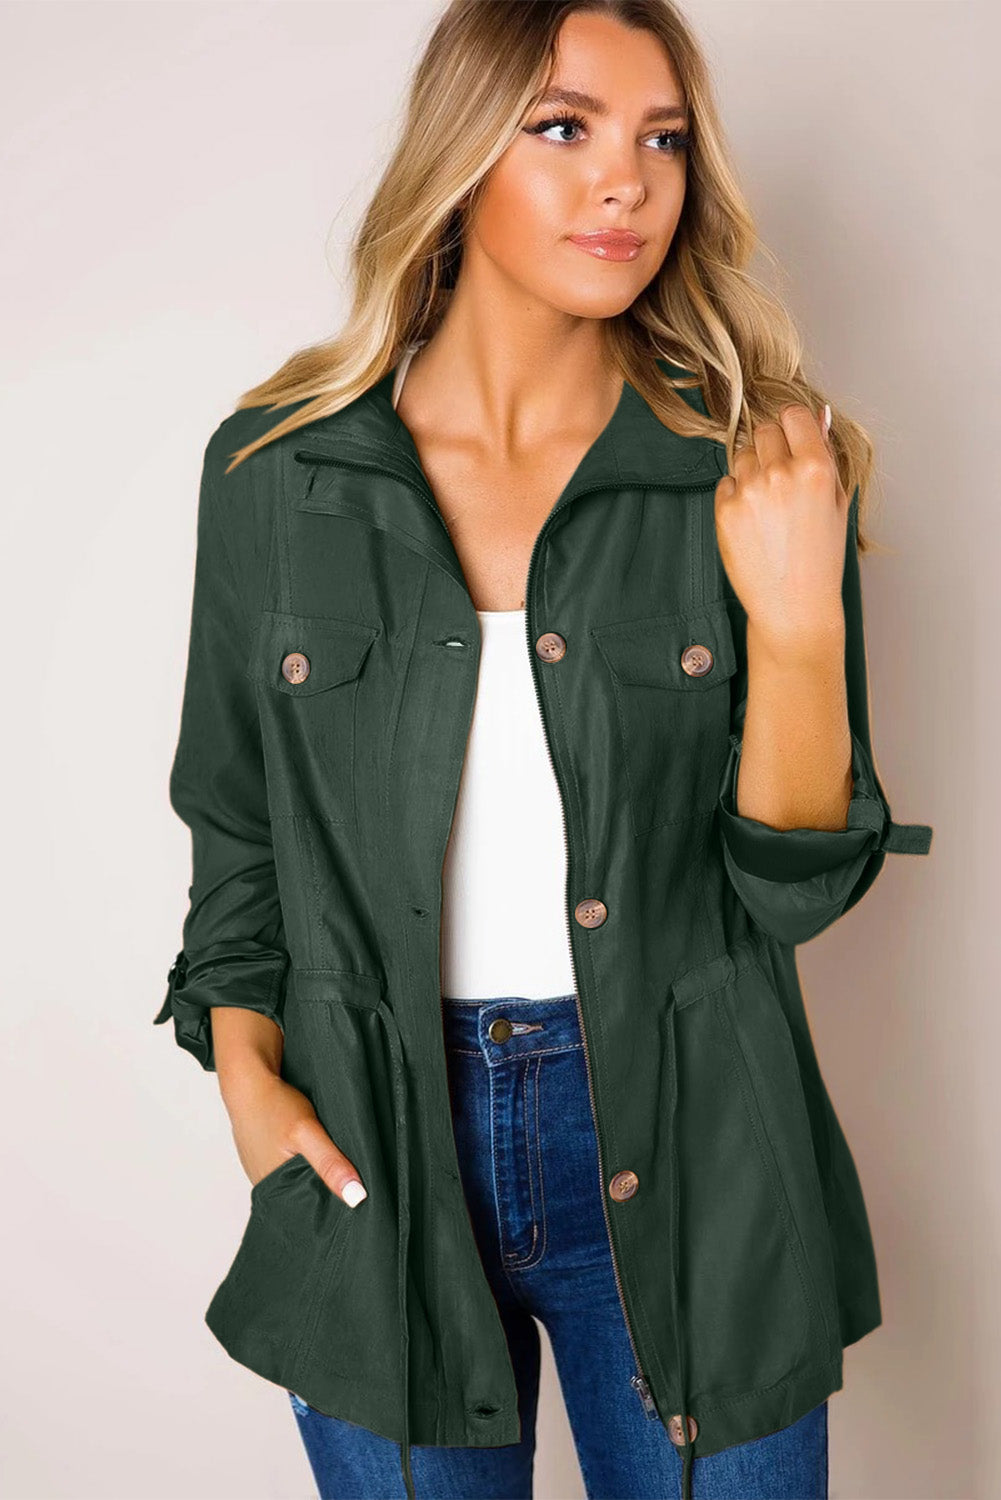 Green Bottoned Pockets Jacket